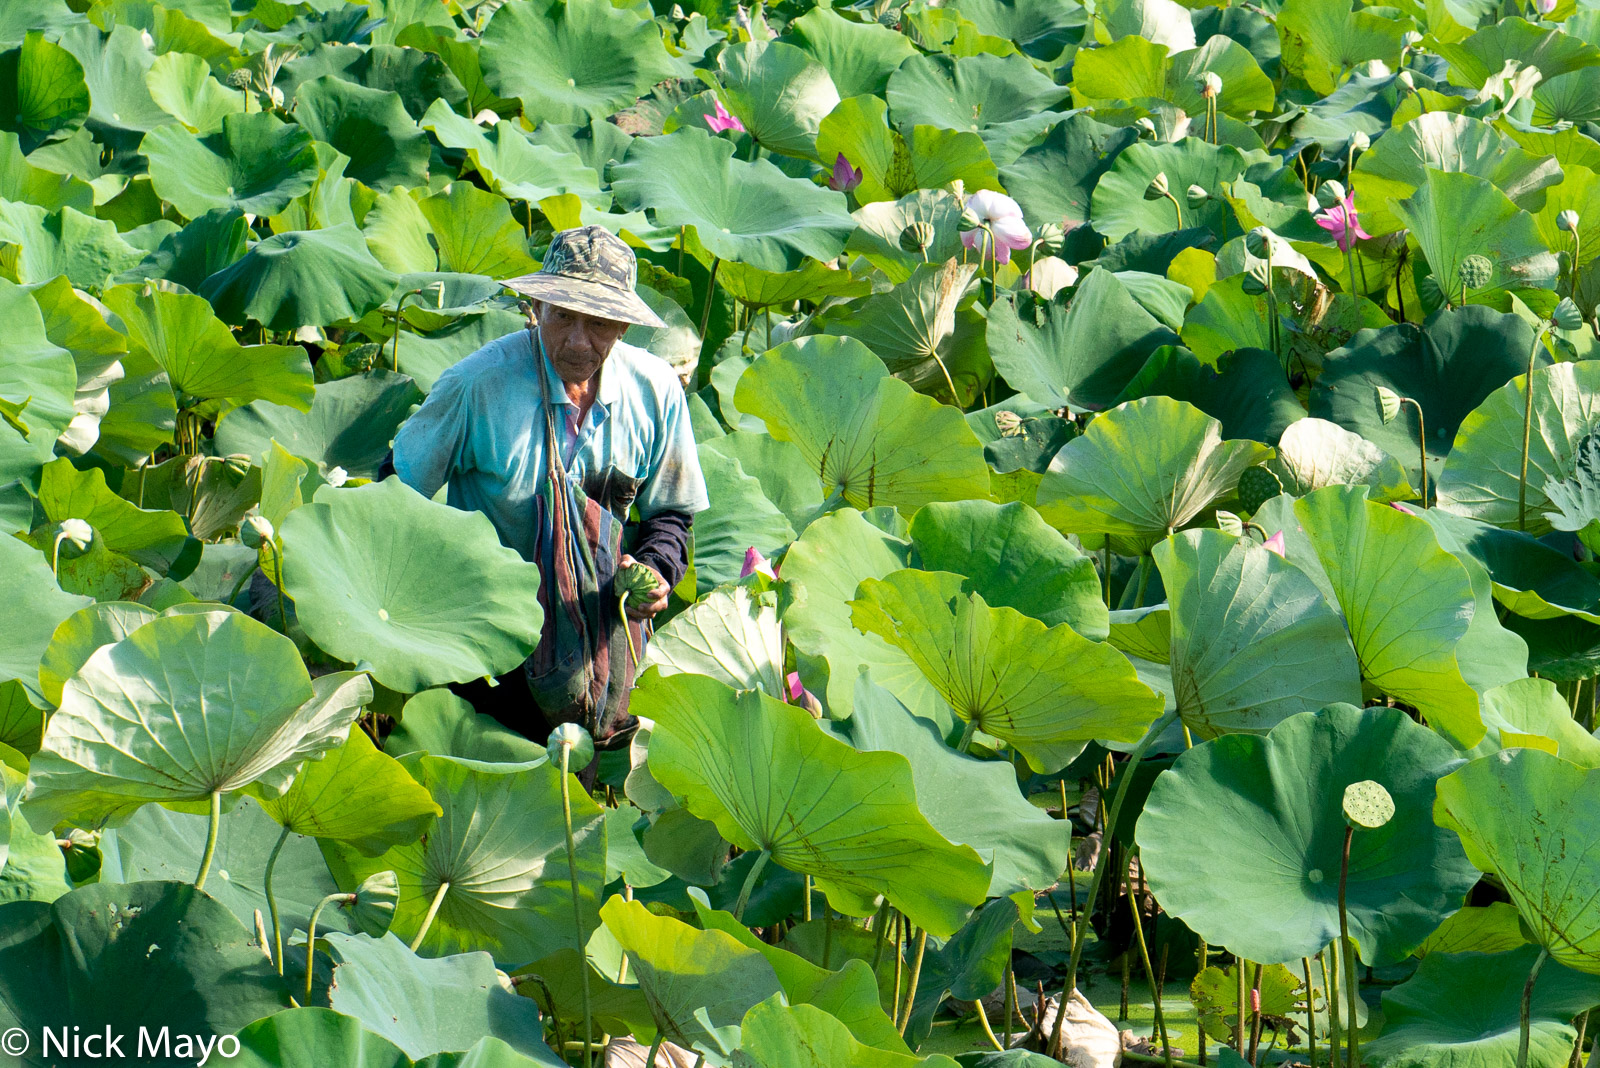 A farmer harvesting lotus pods at Shanzihjiao in Tainan County.